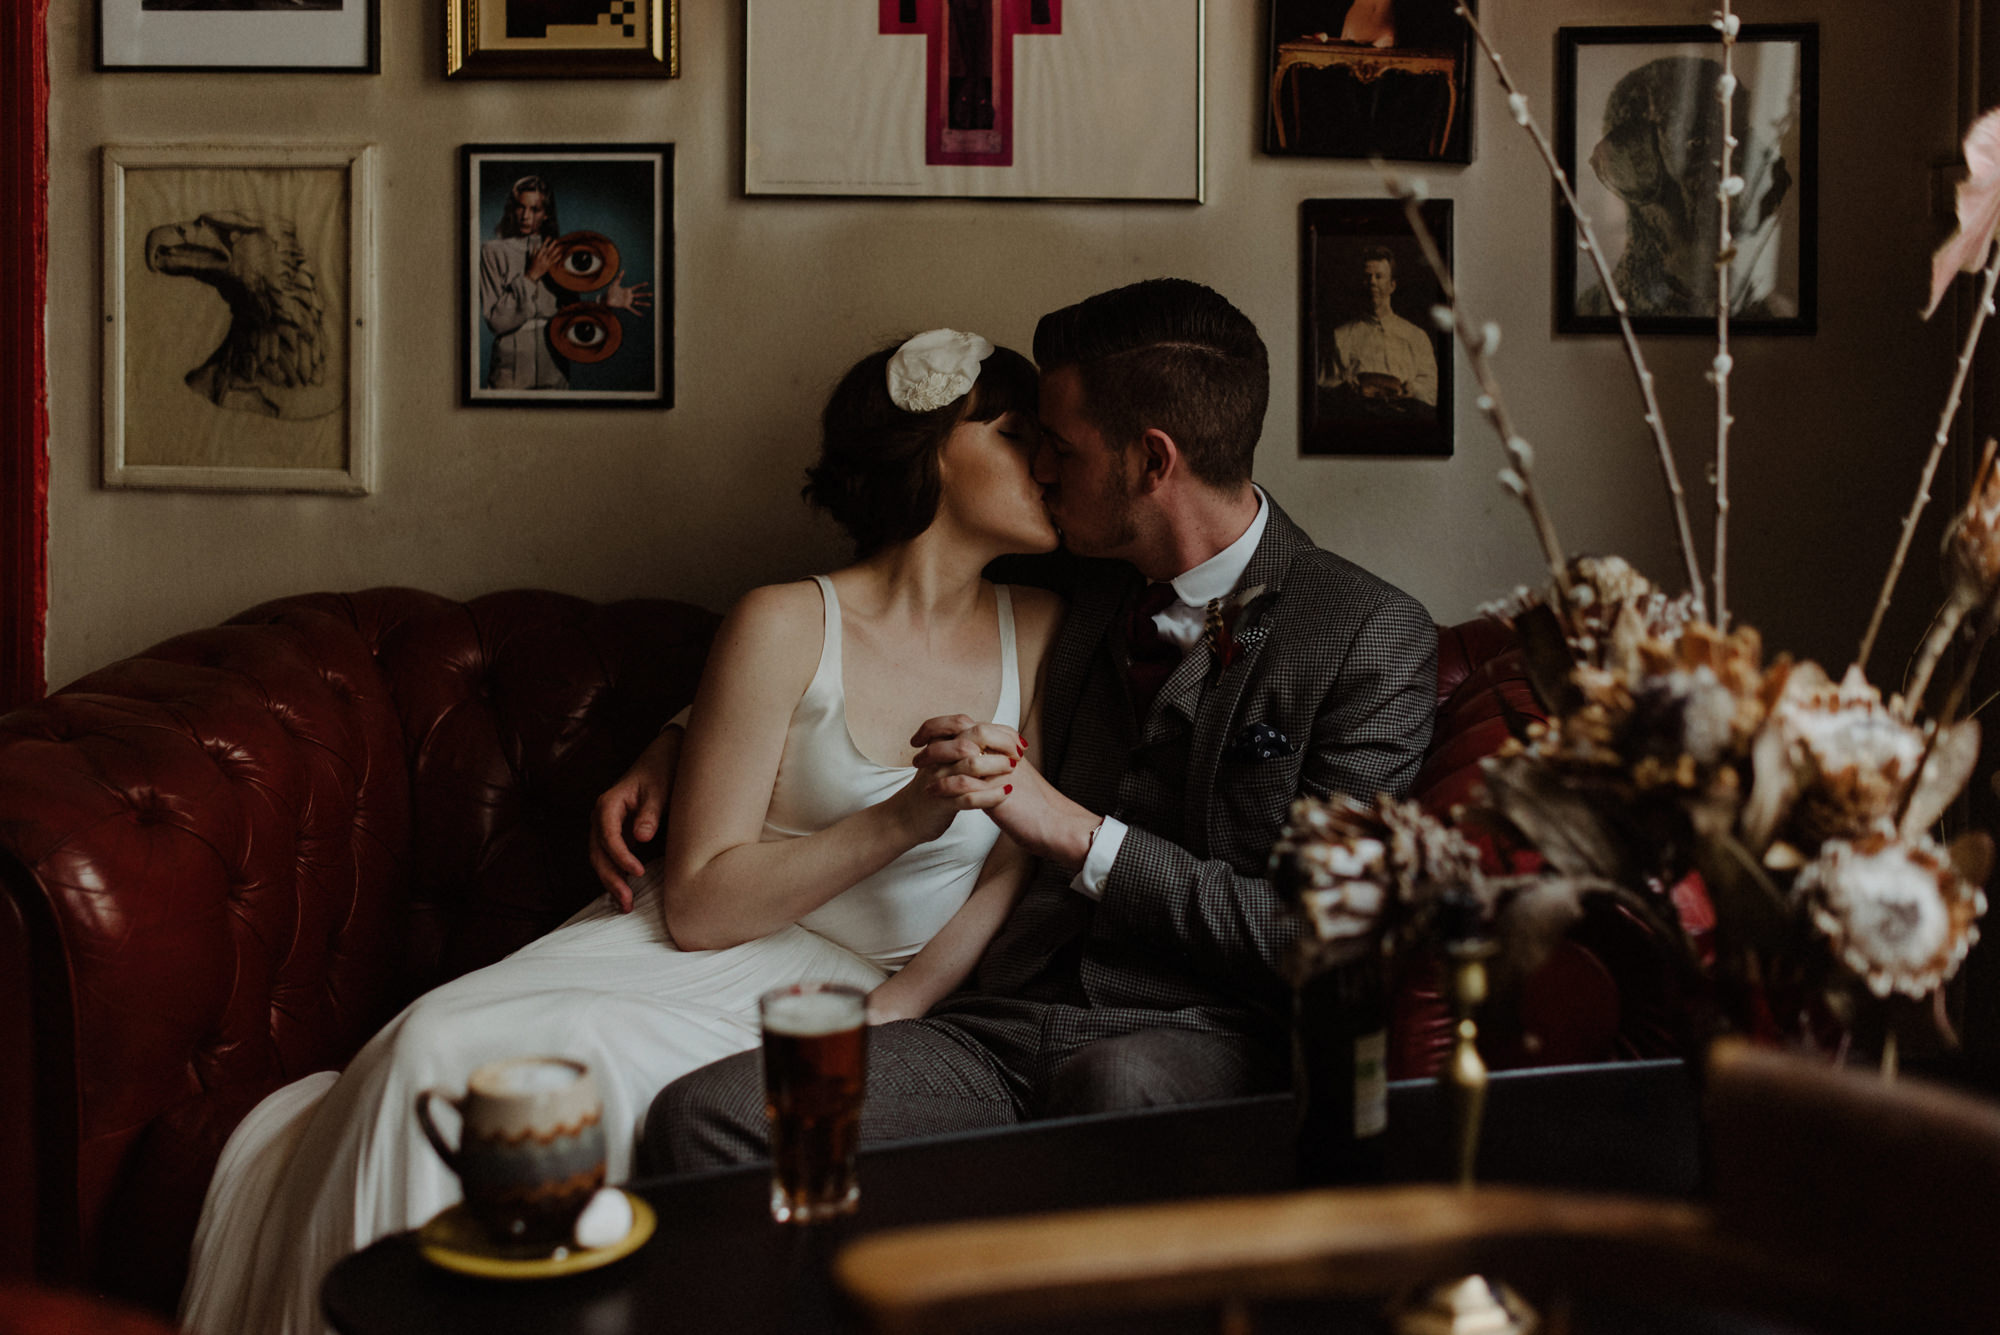 Bride in retro dress kissing groom on couch by The Kitcheners